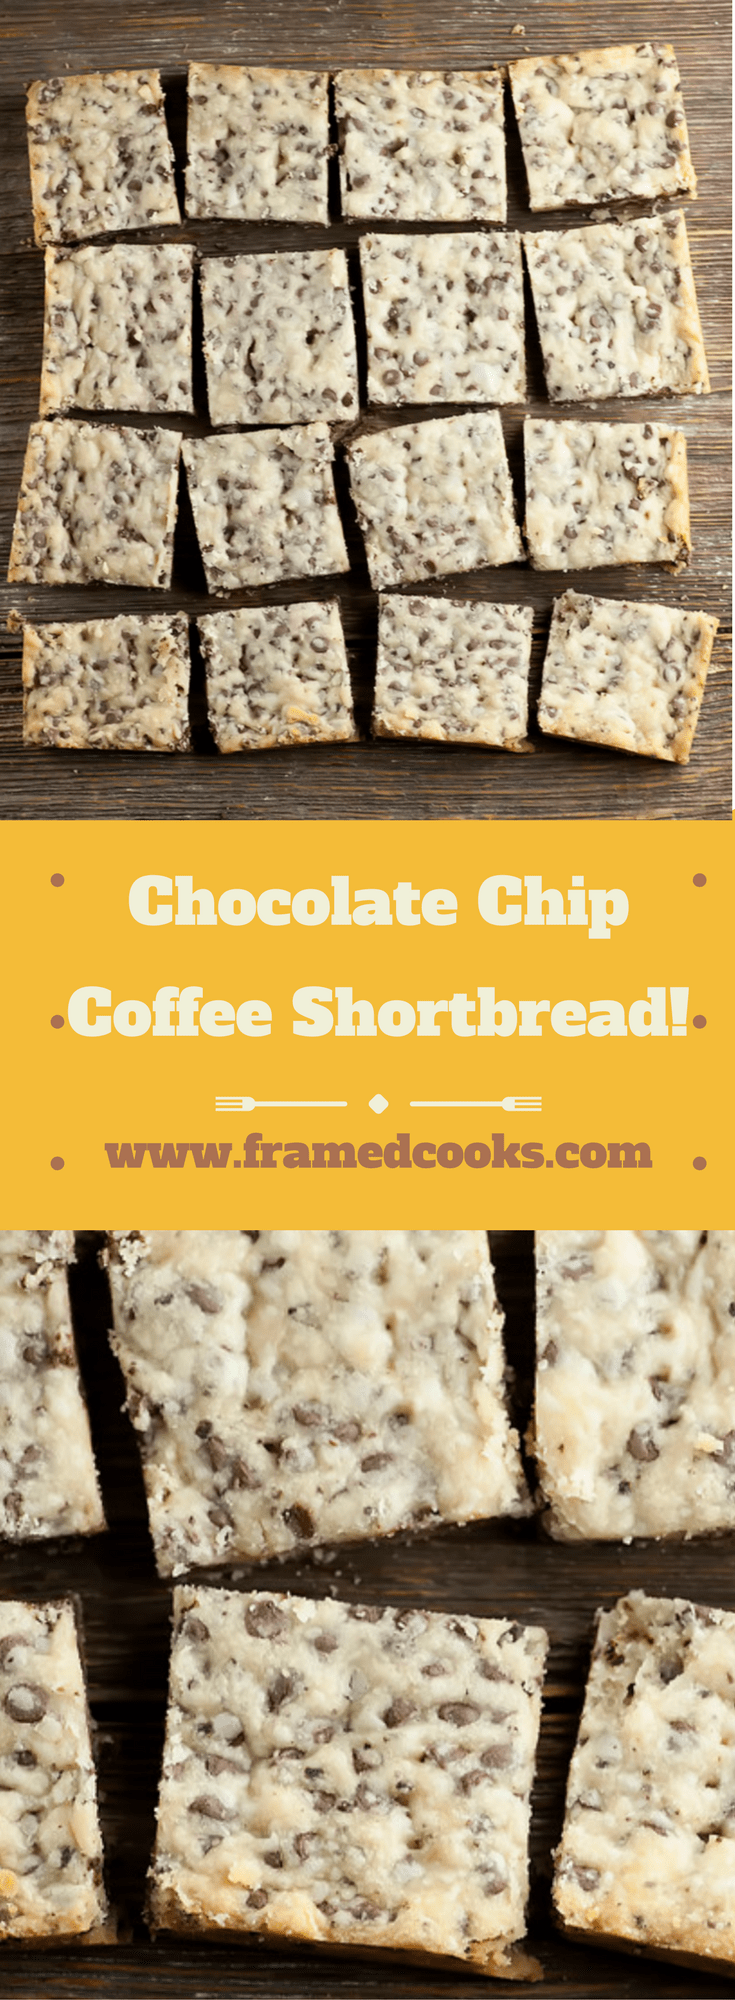 This recipe for chocolate chip coffee shortbread is a must for your holiday baking list!  And don't forget to make a second batch for yourself!